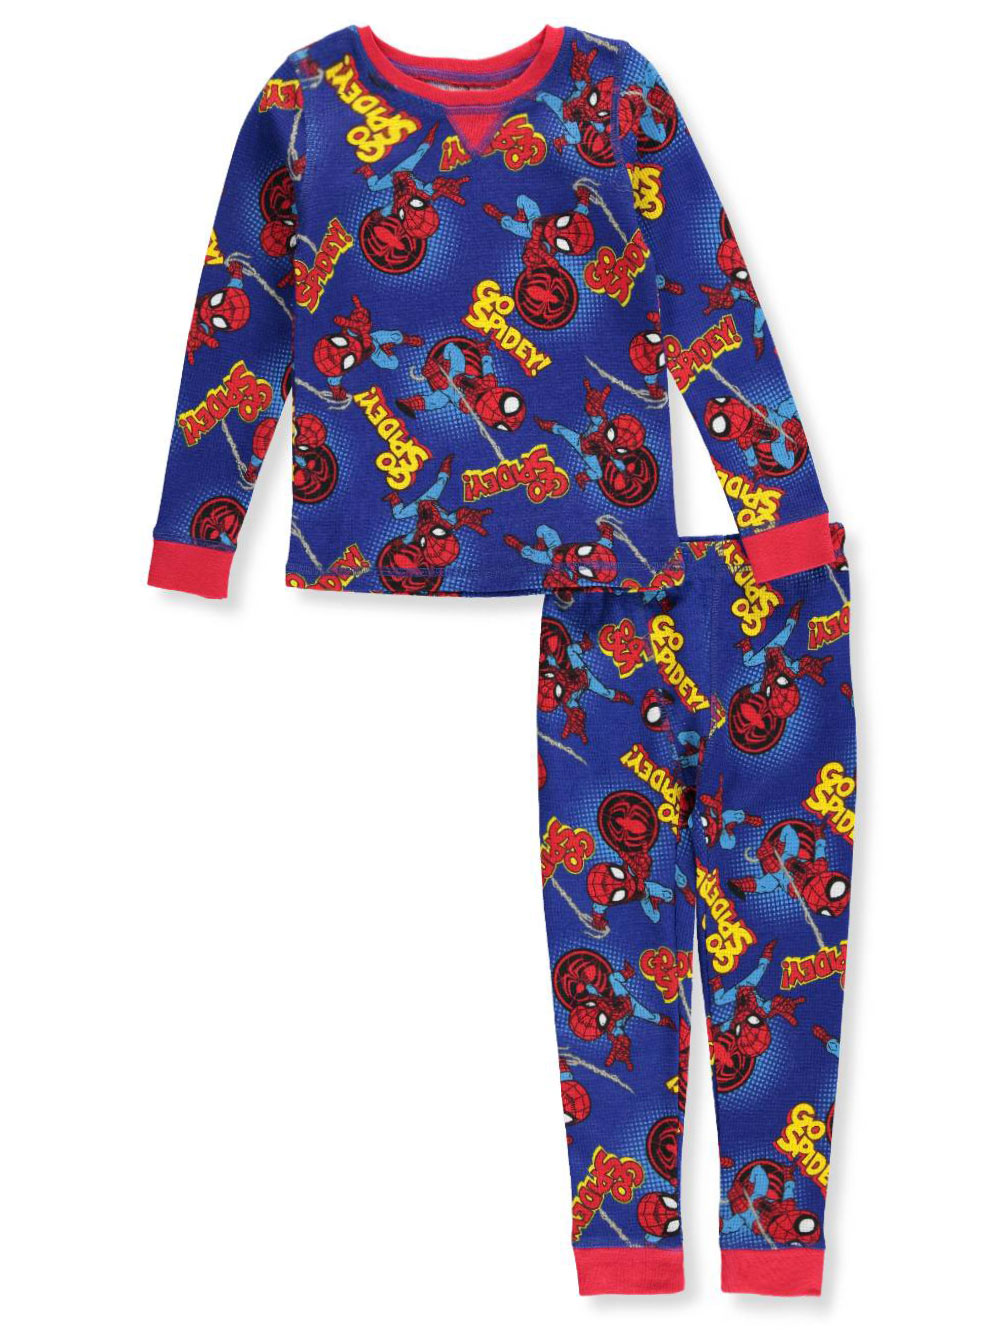 Marvel Superhero Adventures Boys' 2-Piece Thermal Long Underwear Set